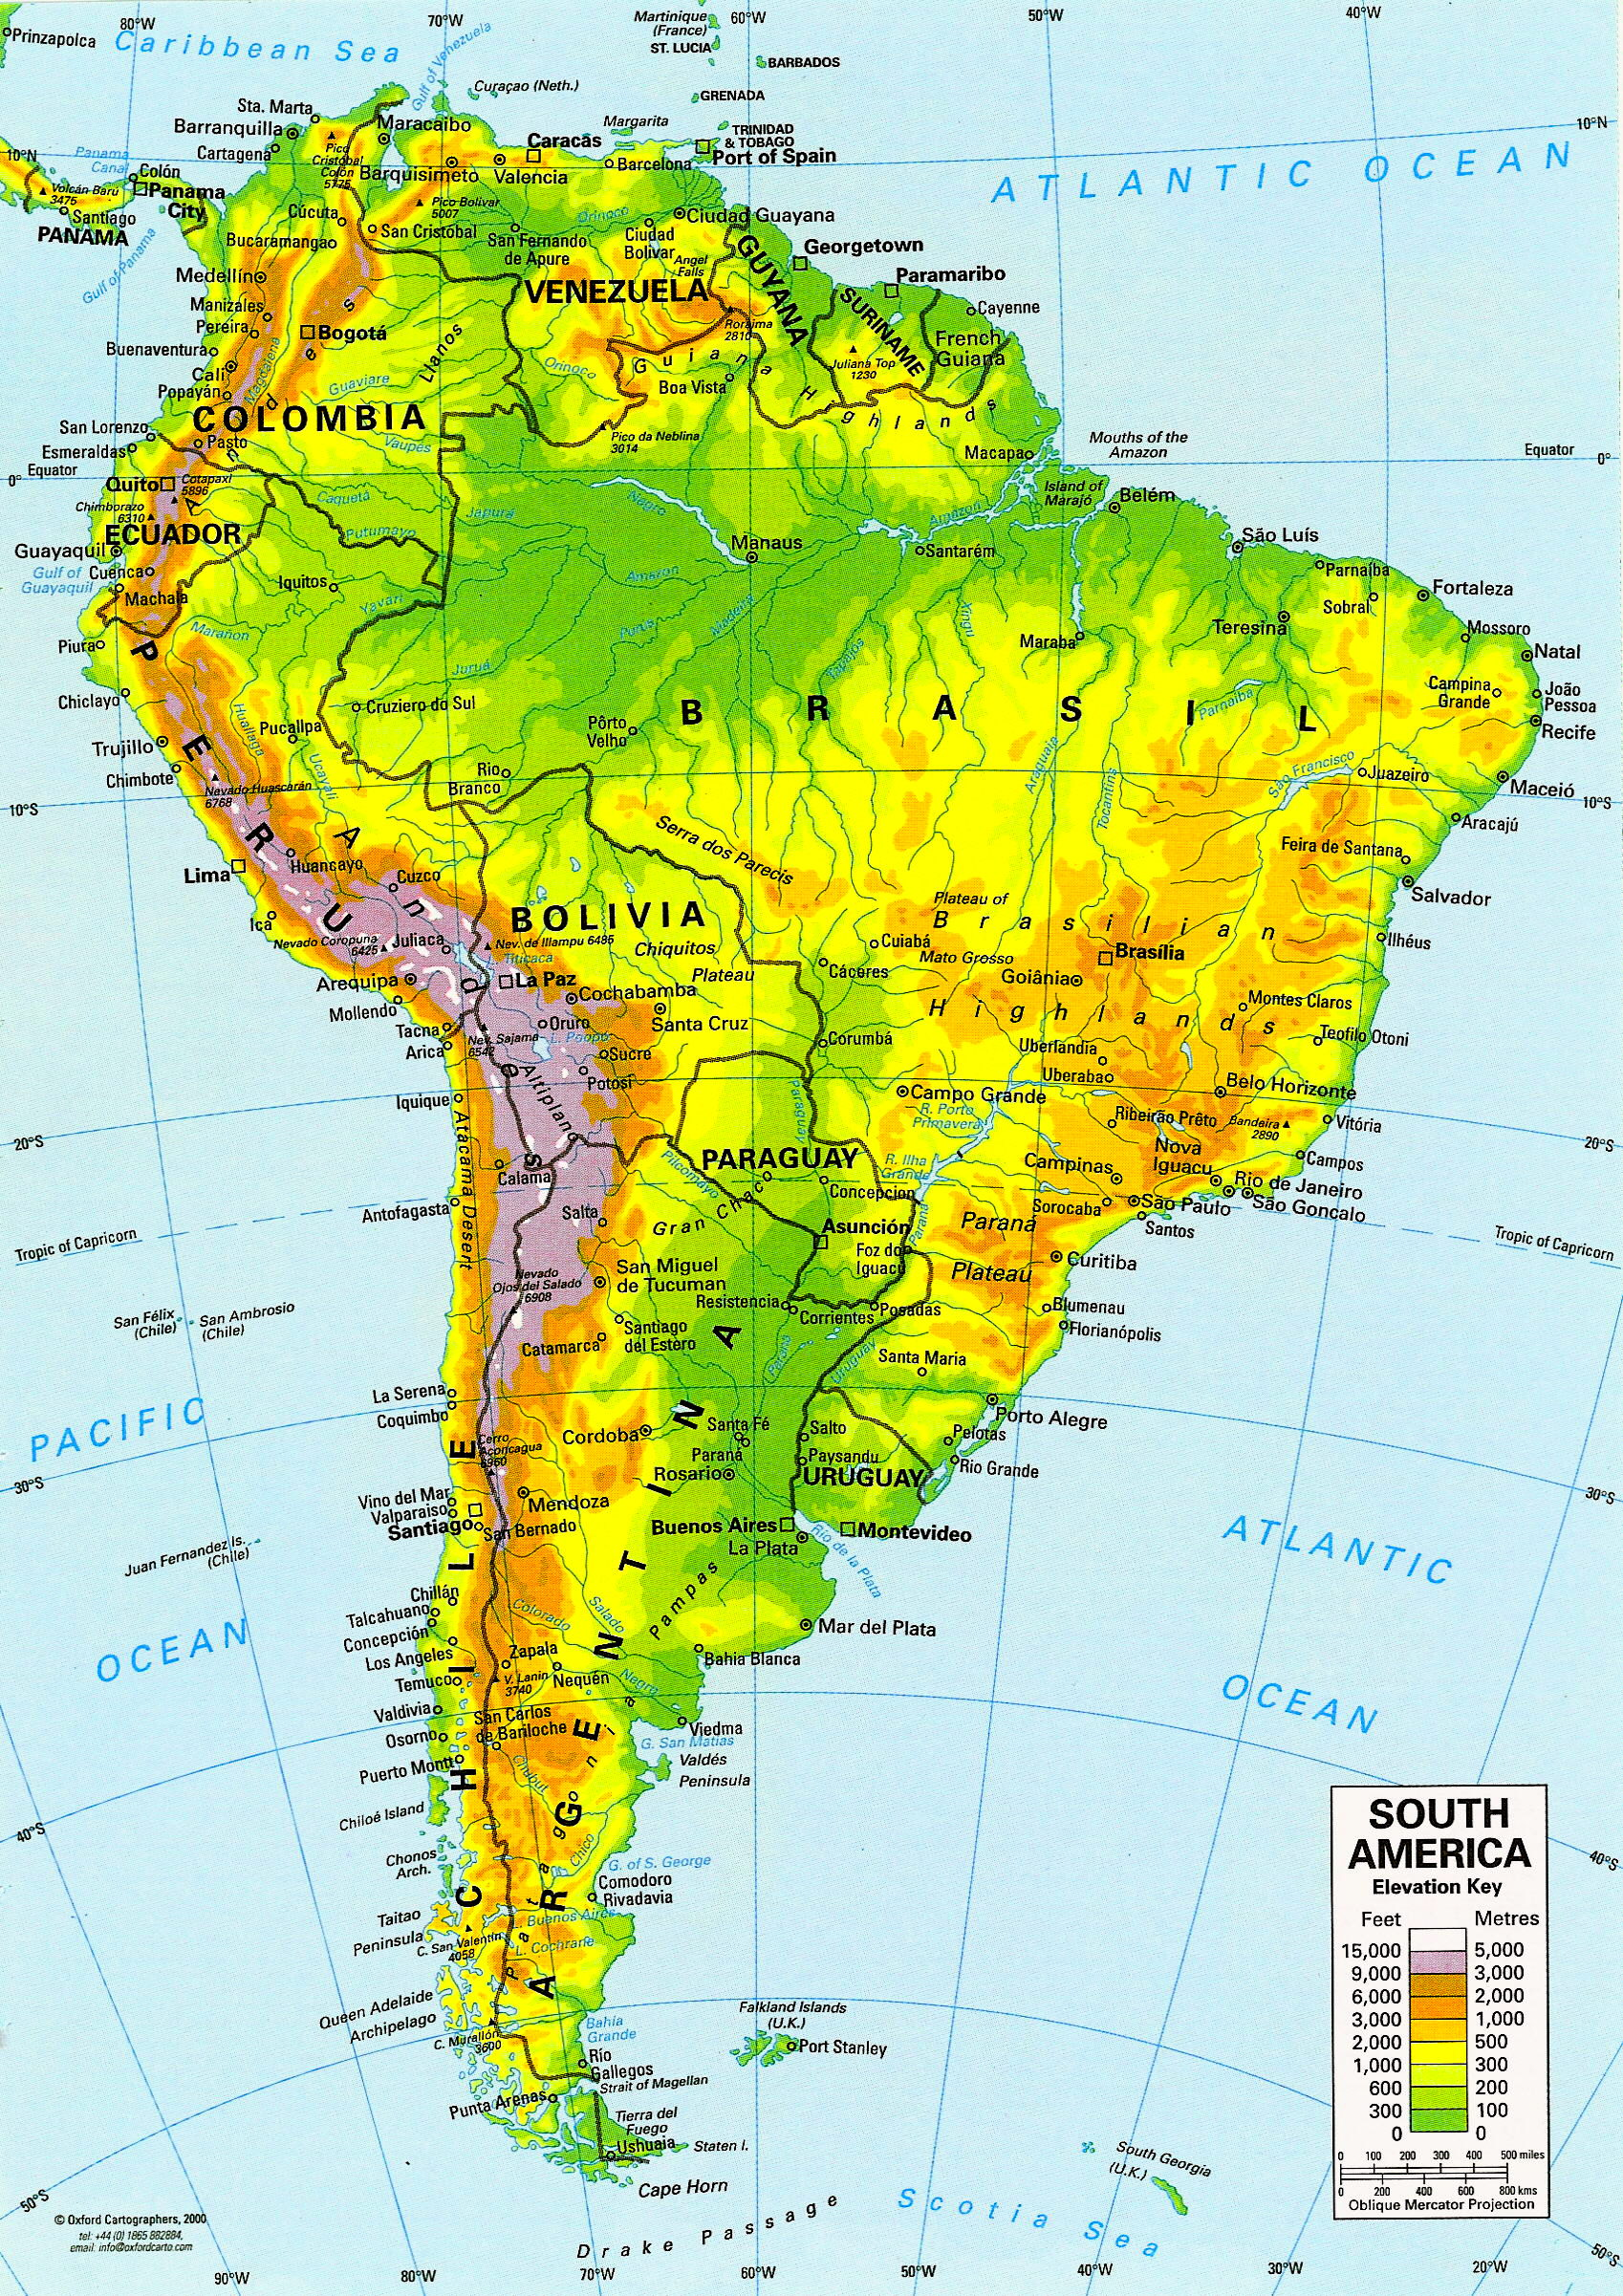 Sudamérica/América do Sul/South America (Post 1; Award 3 ...